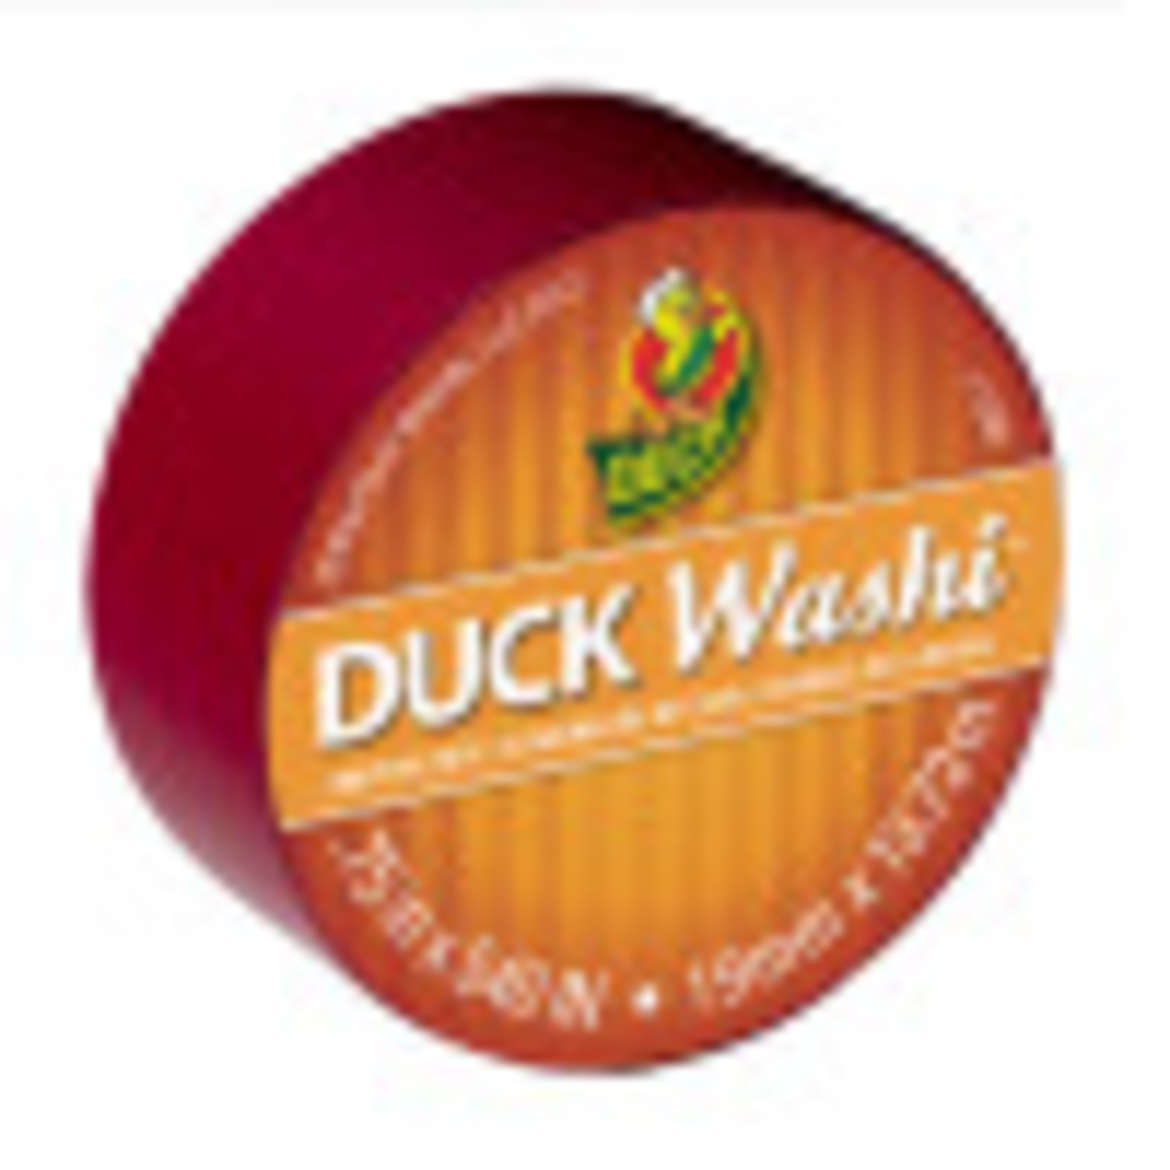 Duck Washi® Crafting Tape - Berry, 0.75 in. X 15 yd. Image